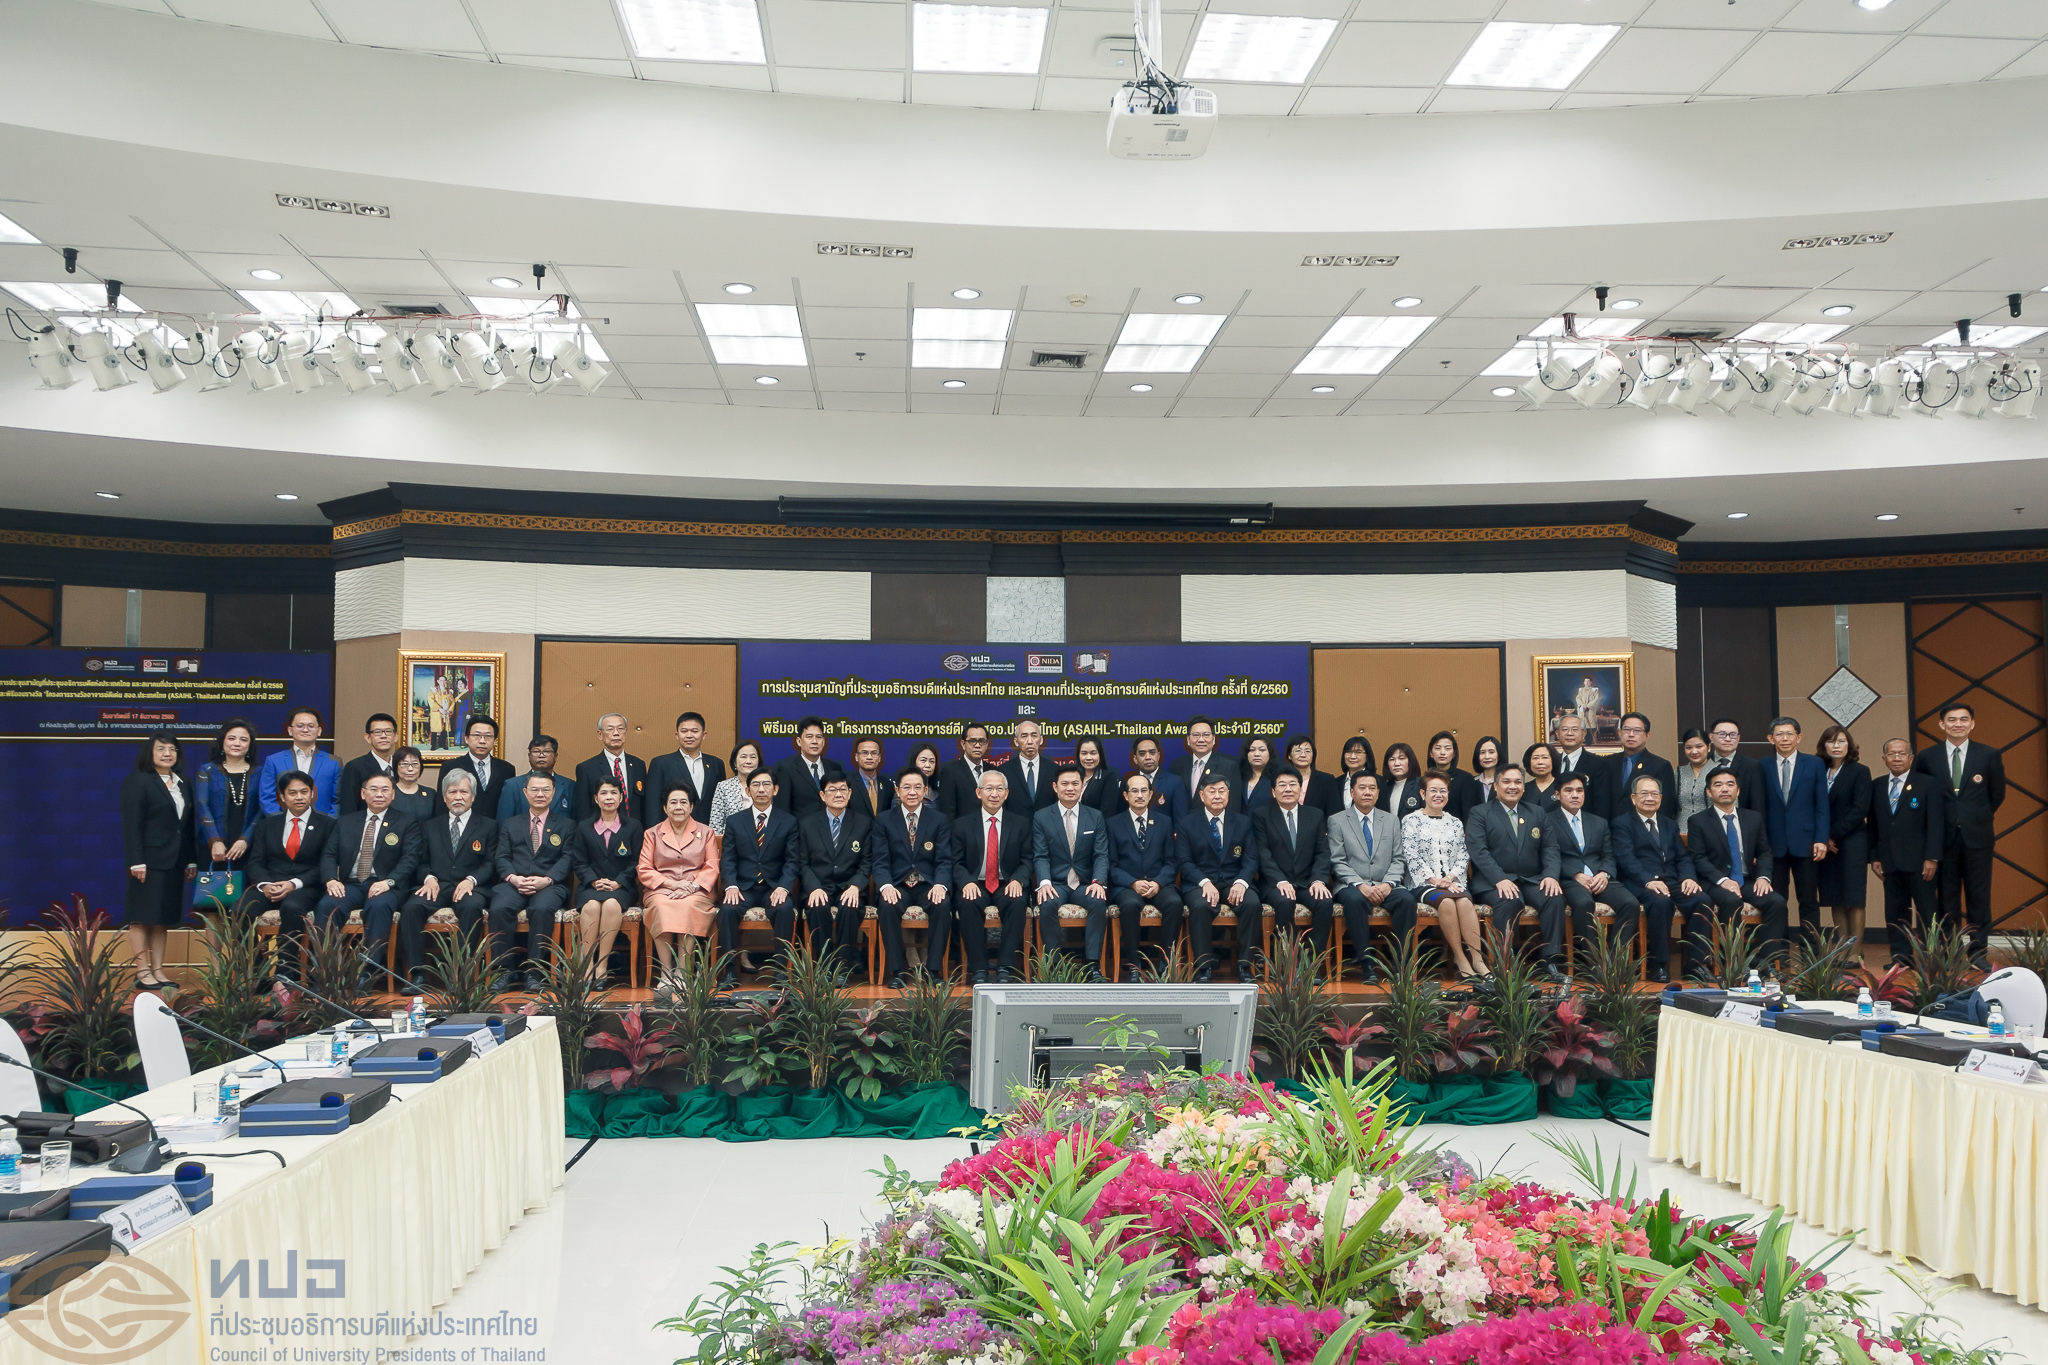 The 6th/2017 General meeting of the Council of University Presidents of Thailand and the Association.